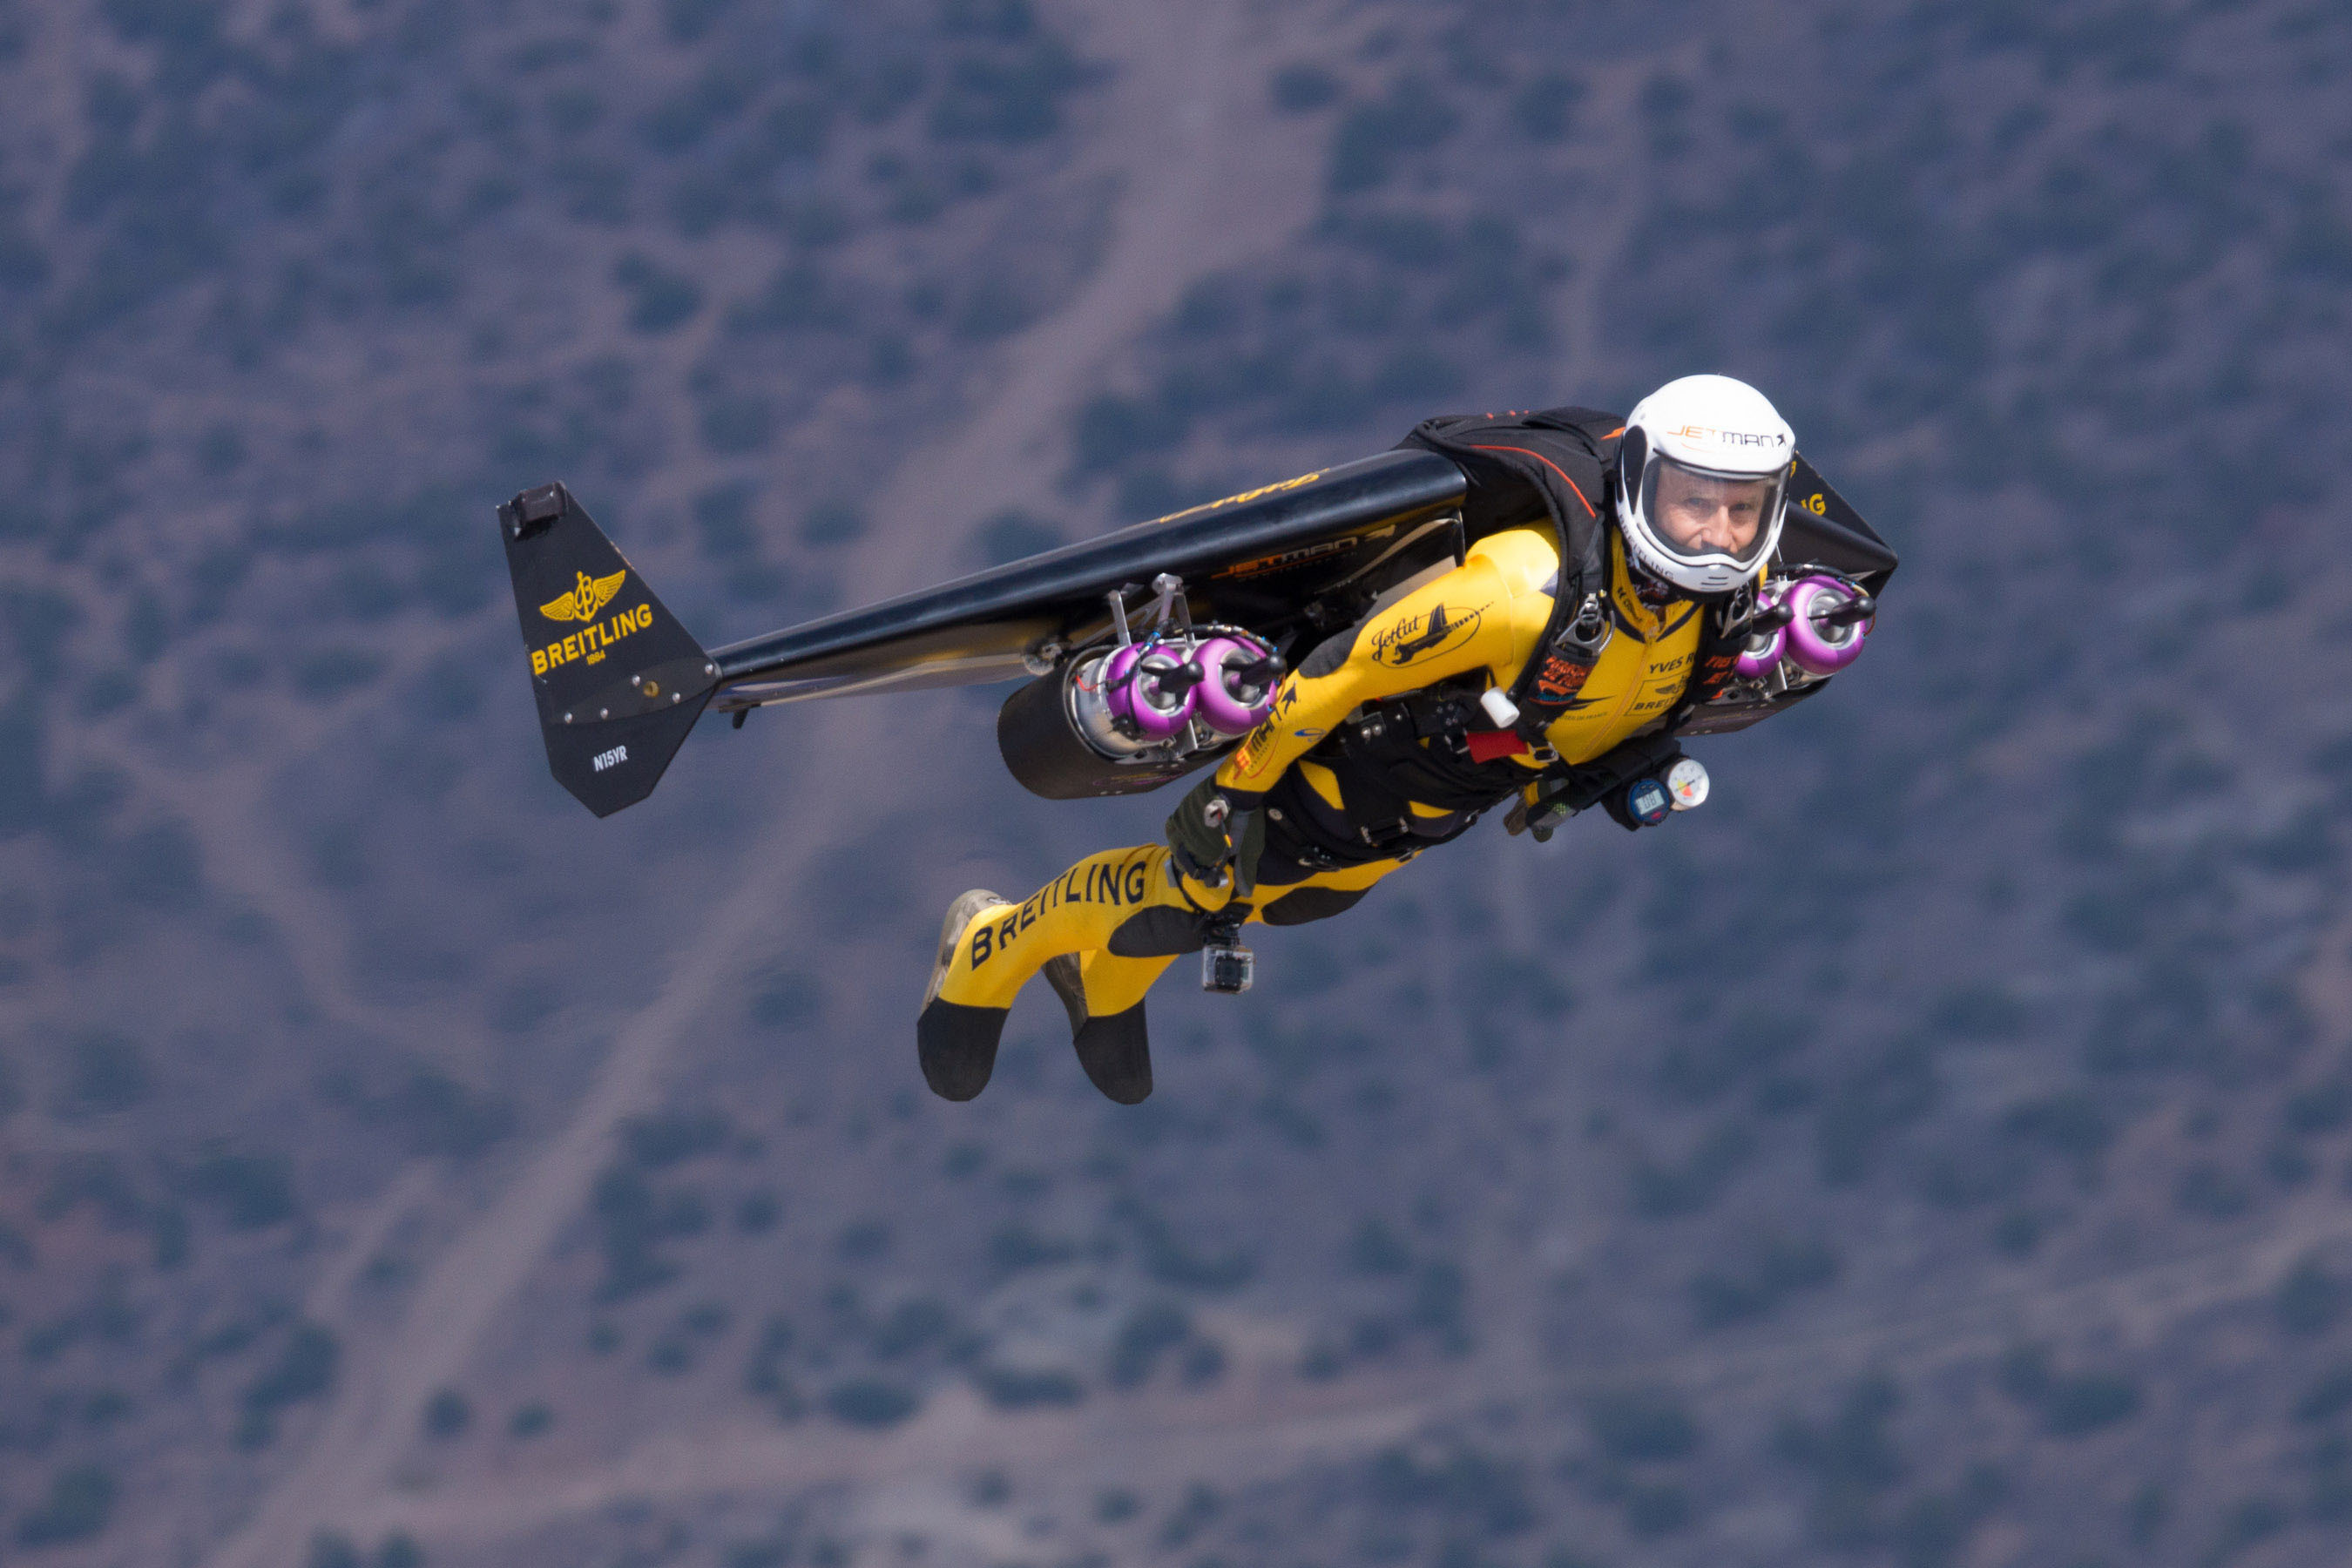 """Yves """"Jetman"""" Rossy flies high above Reno with his Jet Powered wing. Photo by Bernet, courtesy of Breitling SA. (PRNewsFoto/Breitling, Bernet) (PRNewsFoto/BREITLING)"""